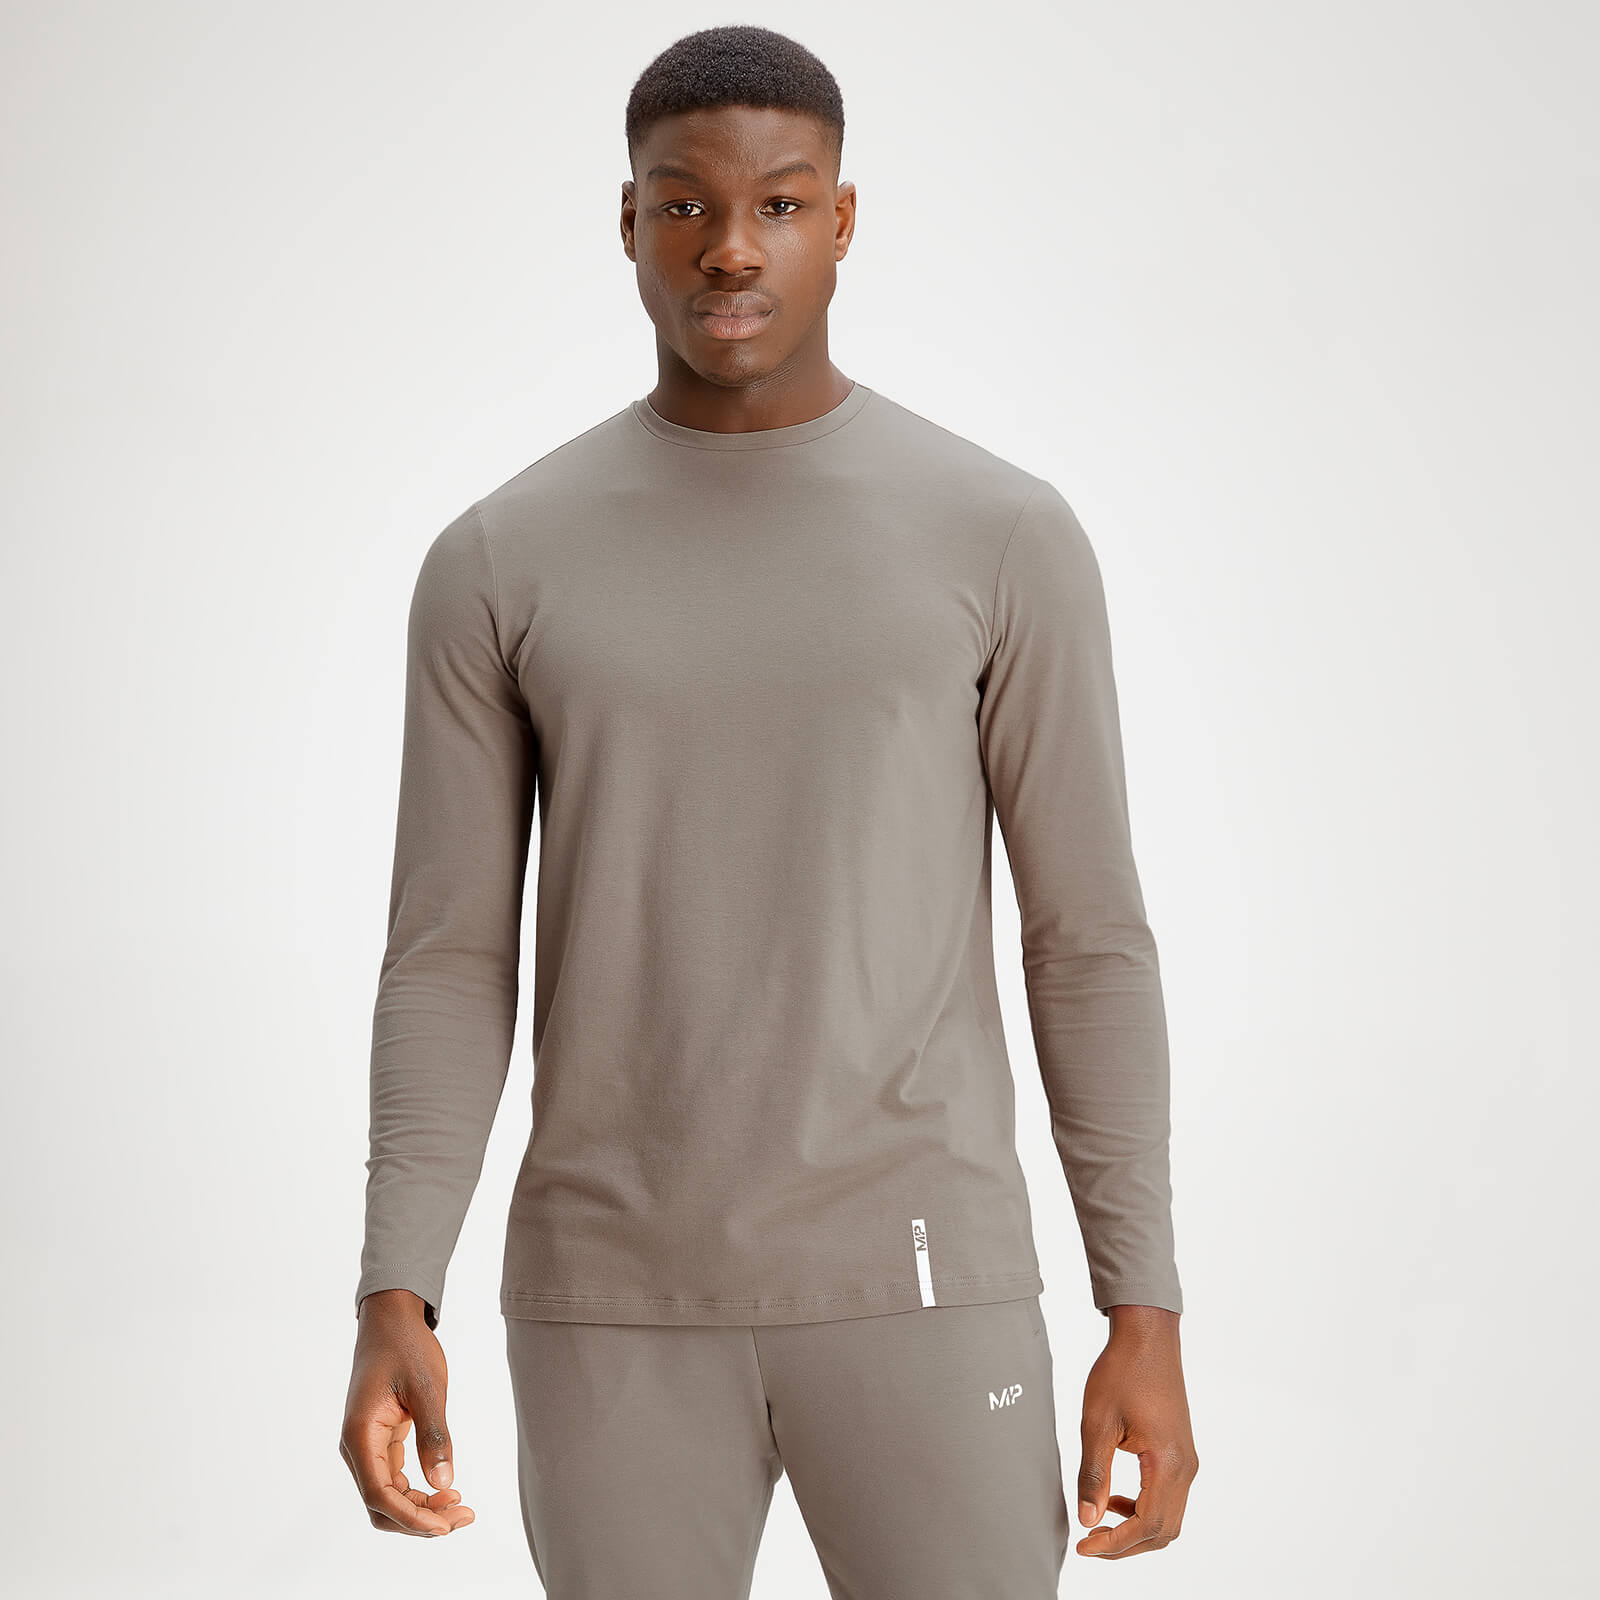 MP Men's Luxe Classic Long Sleeve Crew Top - Taupe - L